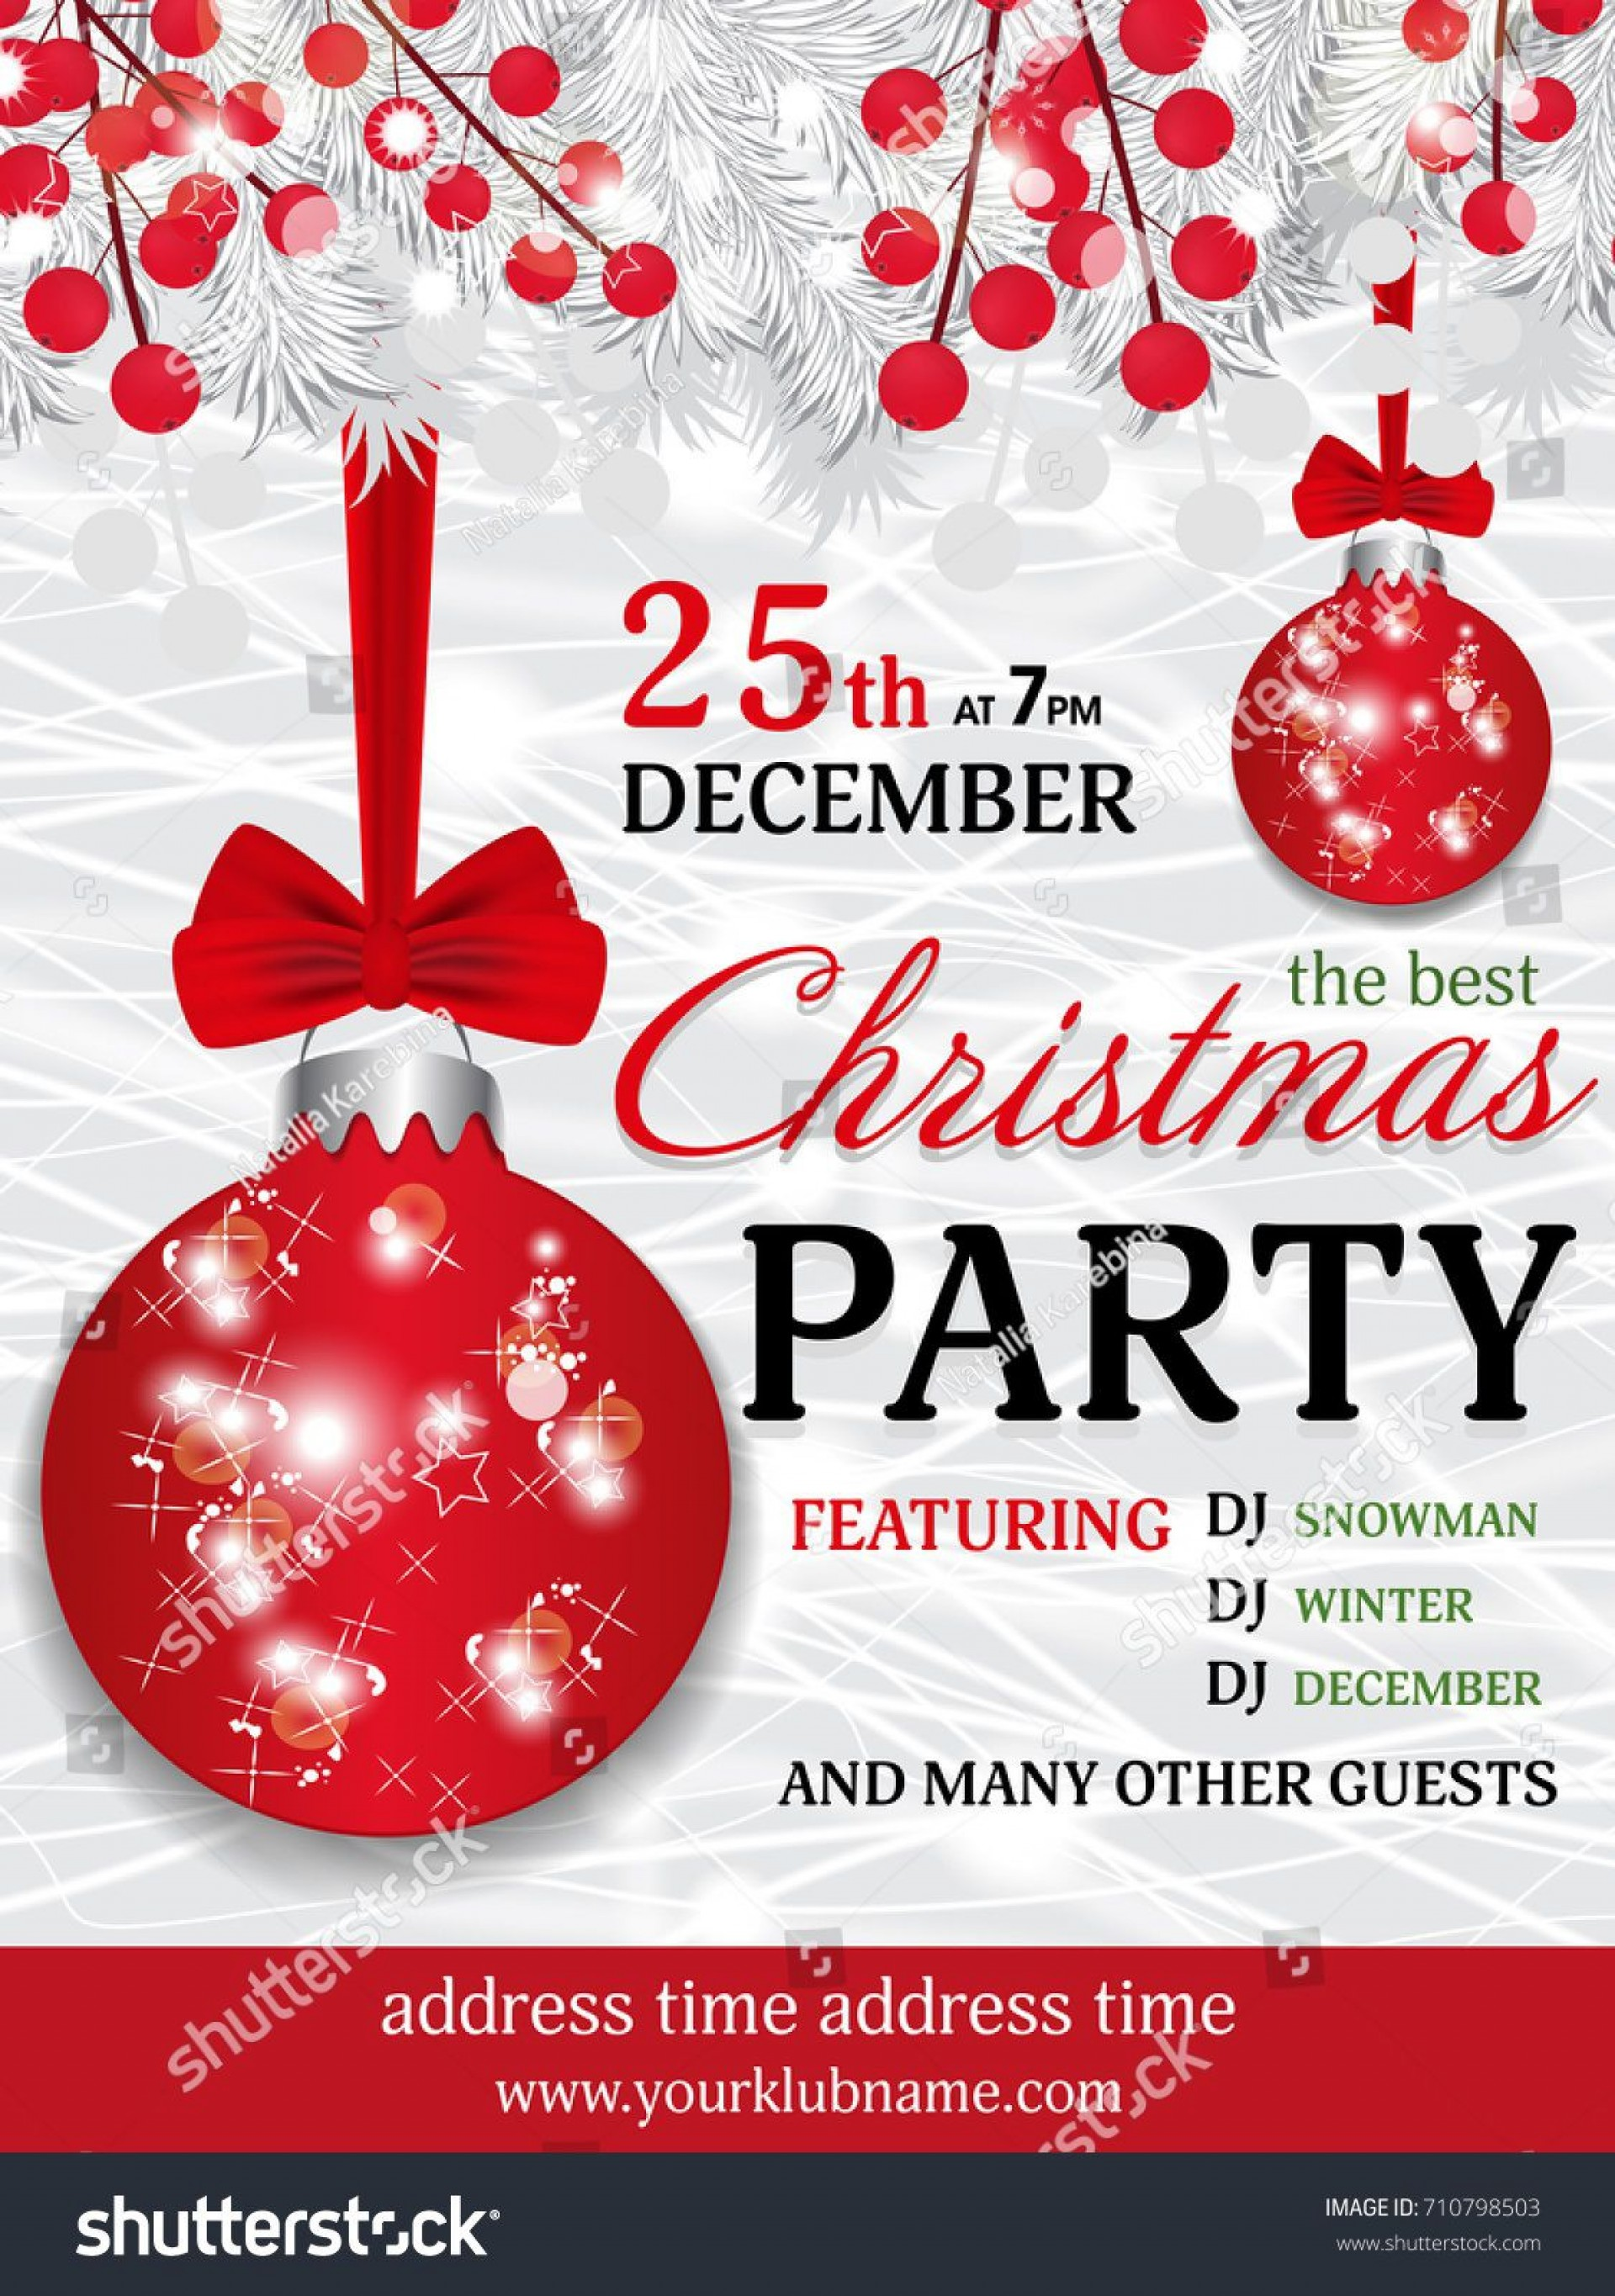 009 Wondrou Christma Party Invitation Template Design  Funny Free Download Word Card1920